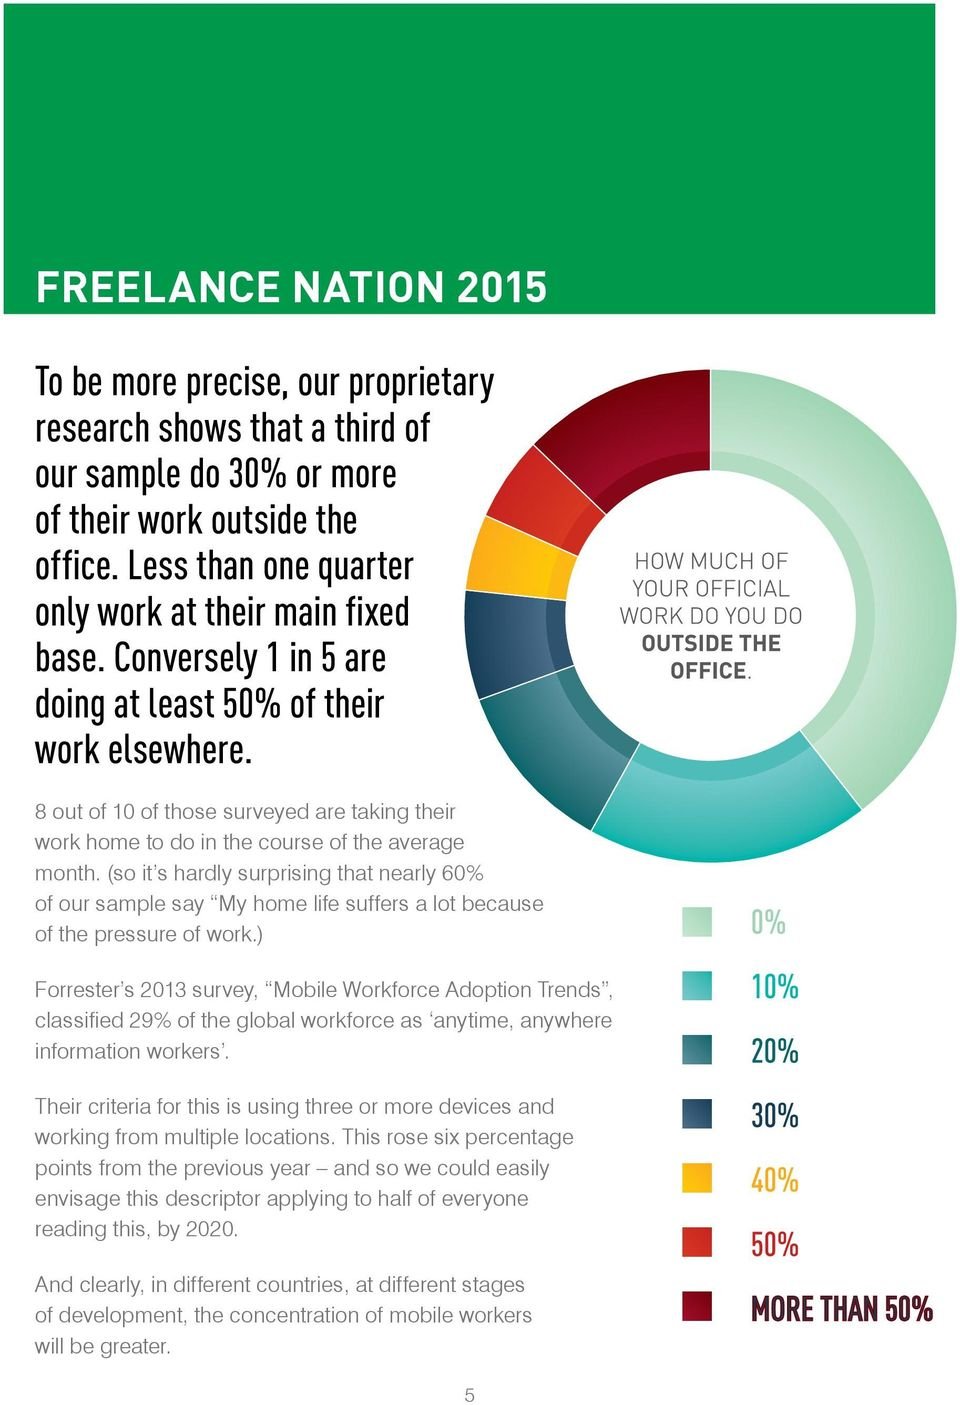 8 out of 10 of those surveyed are taking their work home to do in the course of the average month.